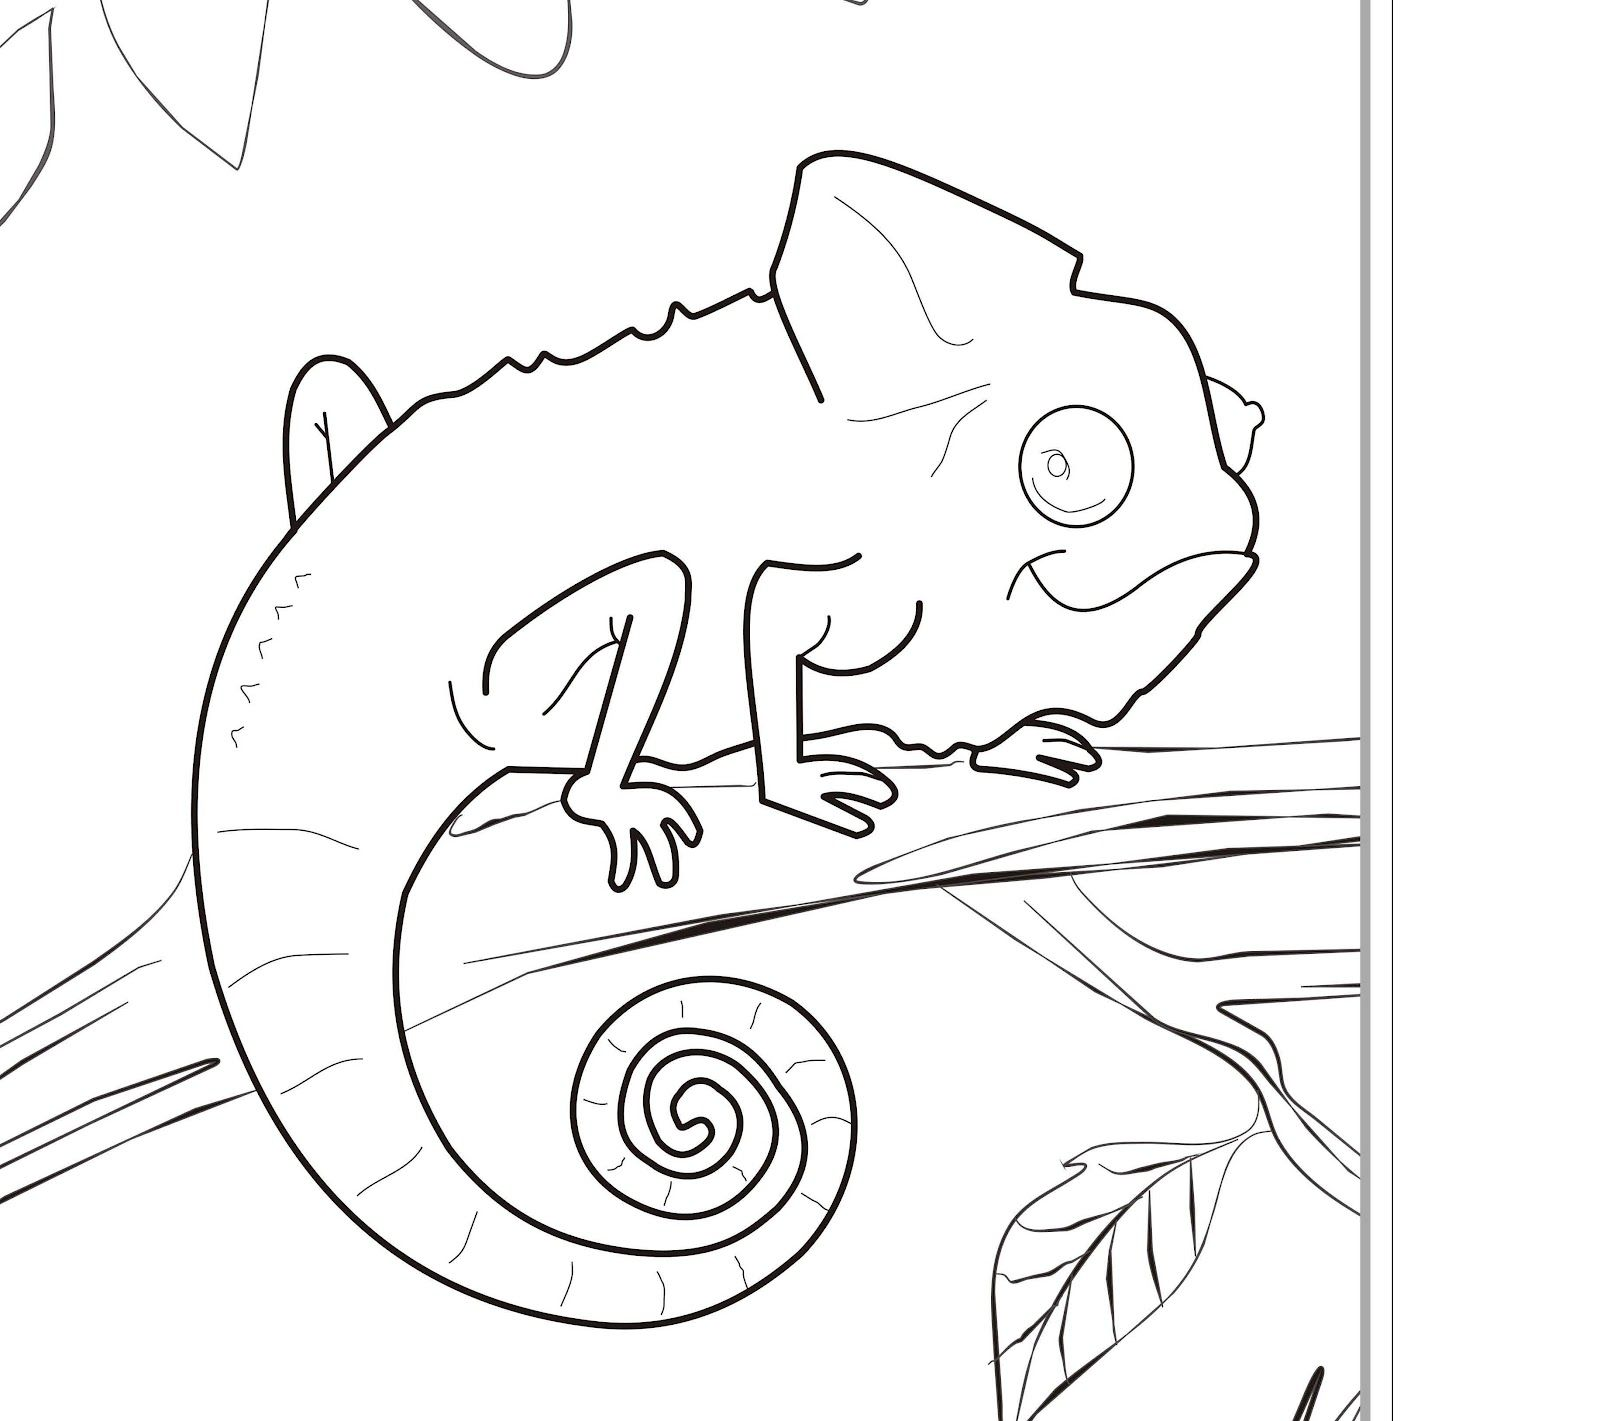 Cute Zoo Animals Coloring Pages Zoo Animal Coloring Pages Realistic Coloring Pages Zoo Animal Coloring Pages Animal Coloring Pages Animal Coloring Books